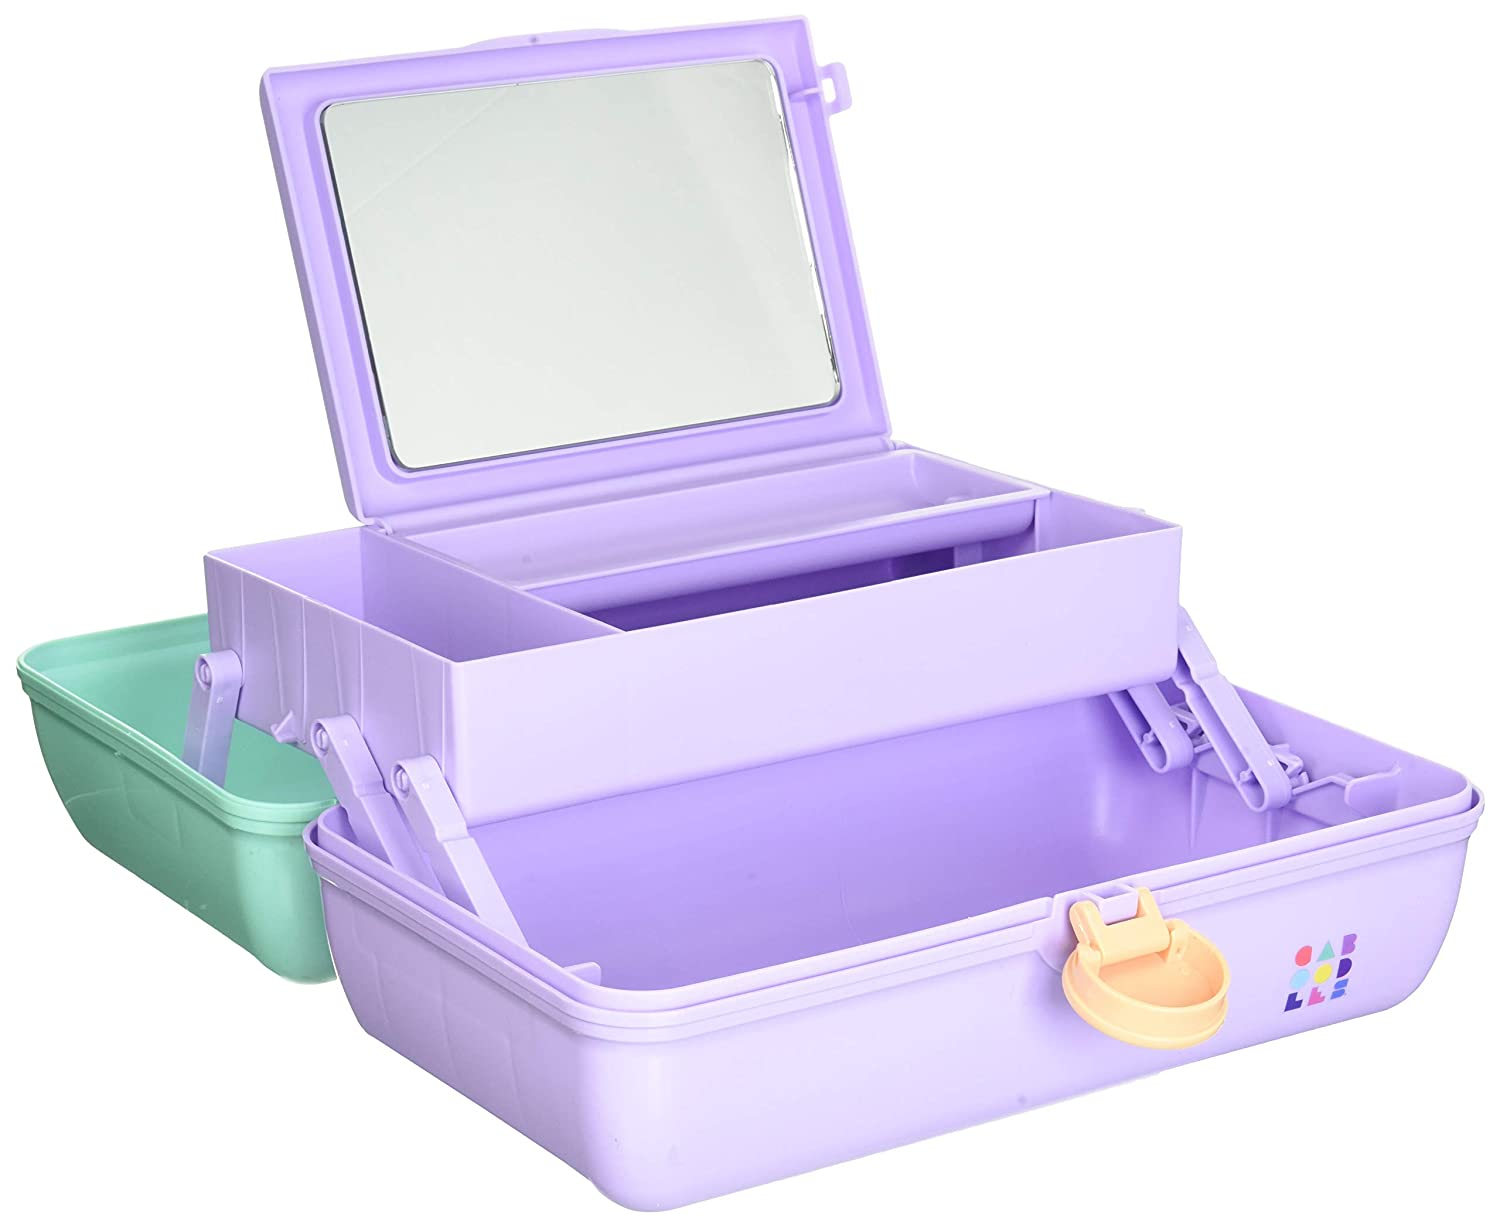 Caboodles On-The-Go Girl Sea foam Lid & Lavender Base Vintage Case, 1 Lb: Beauty